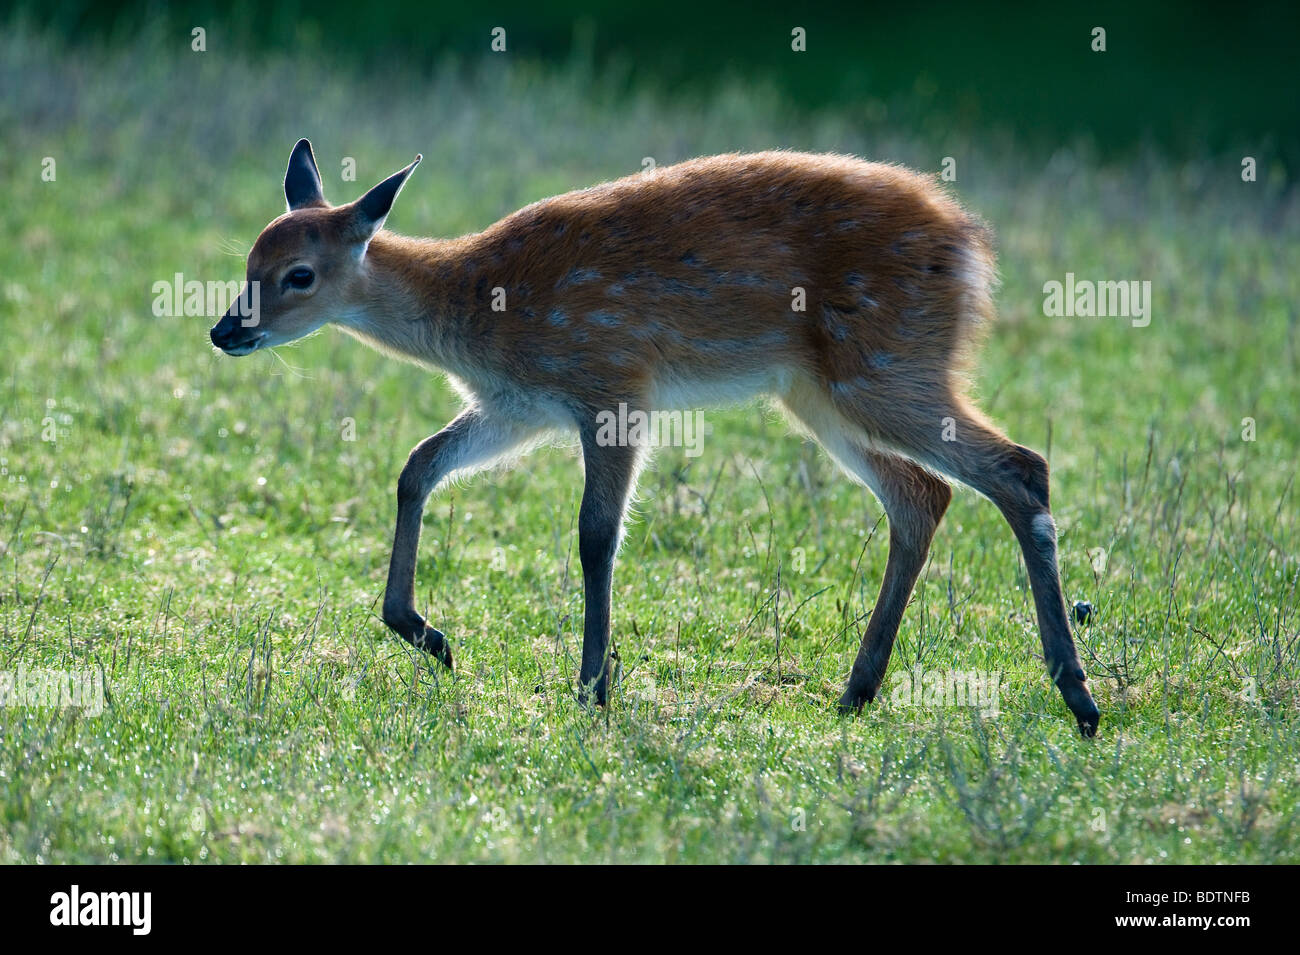 Sika (deer), Cervus nippon, young animal in backlight - Stock Image